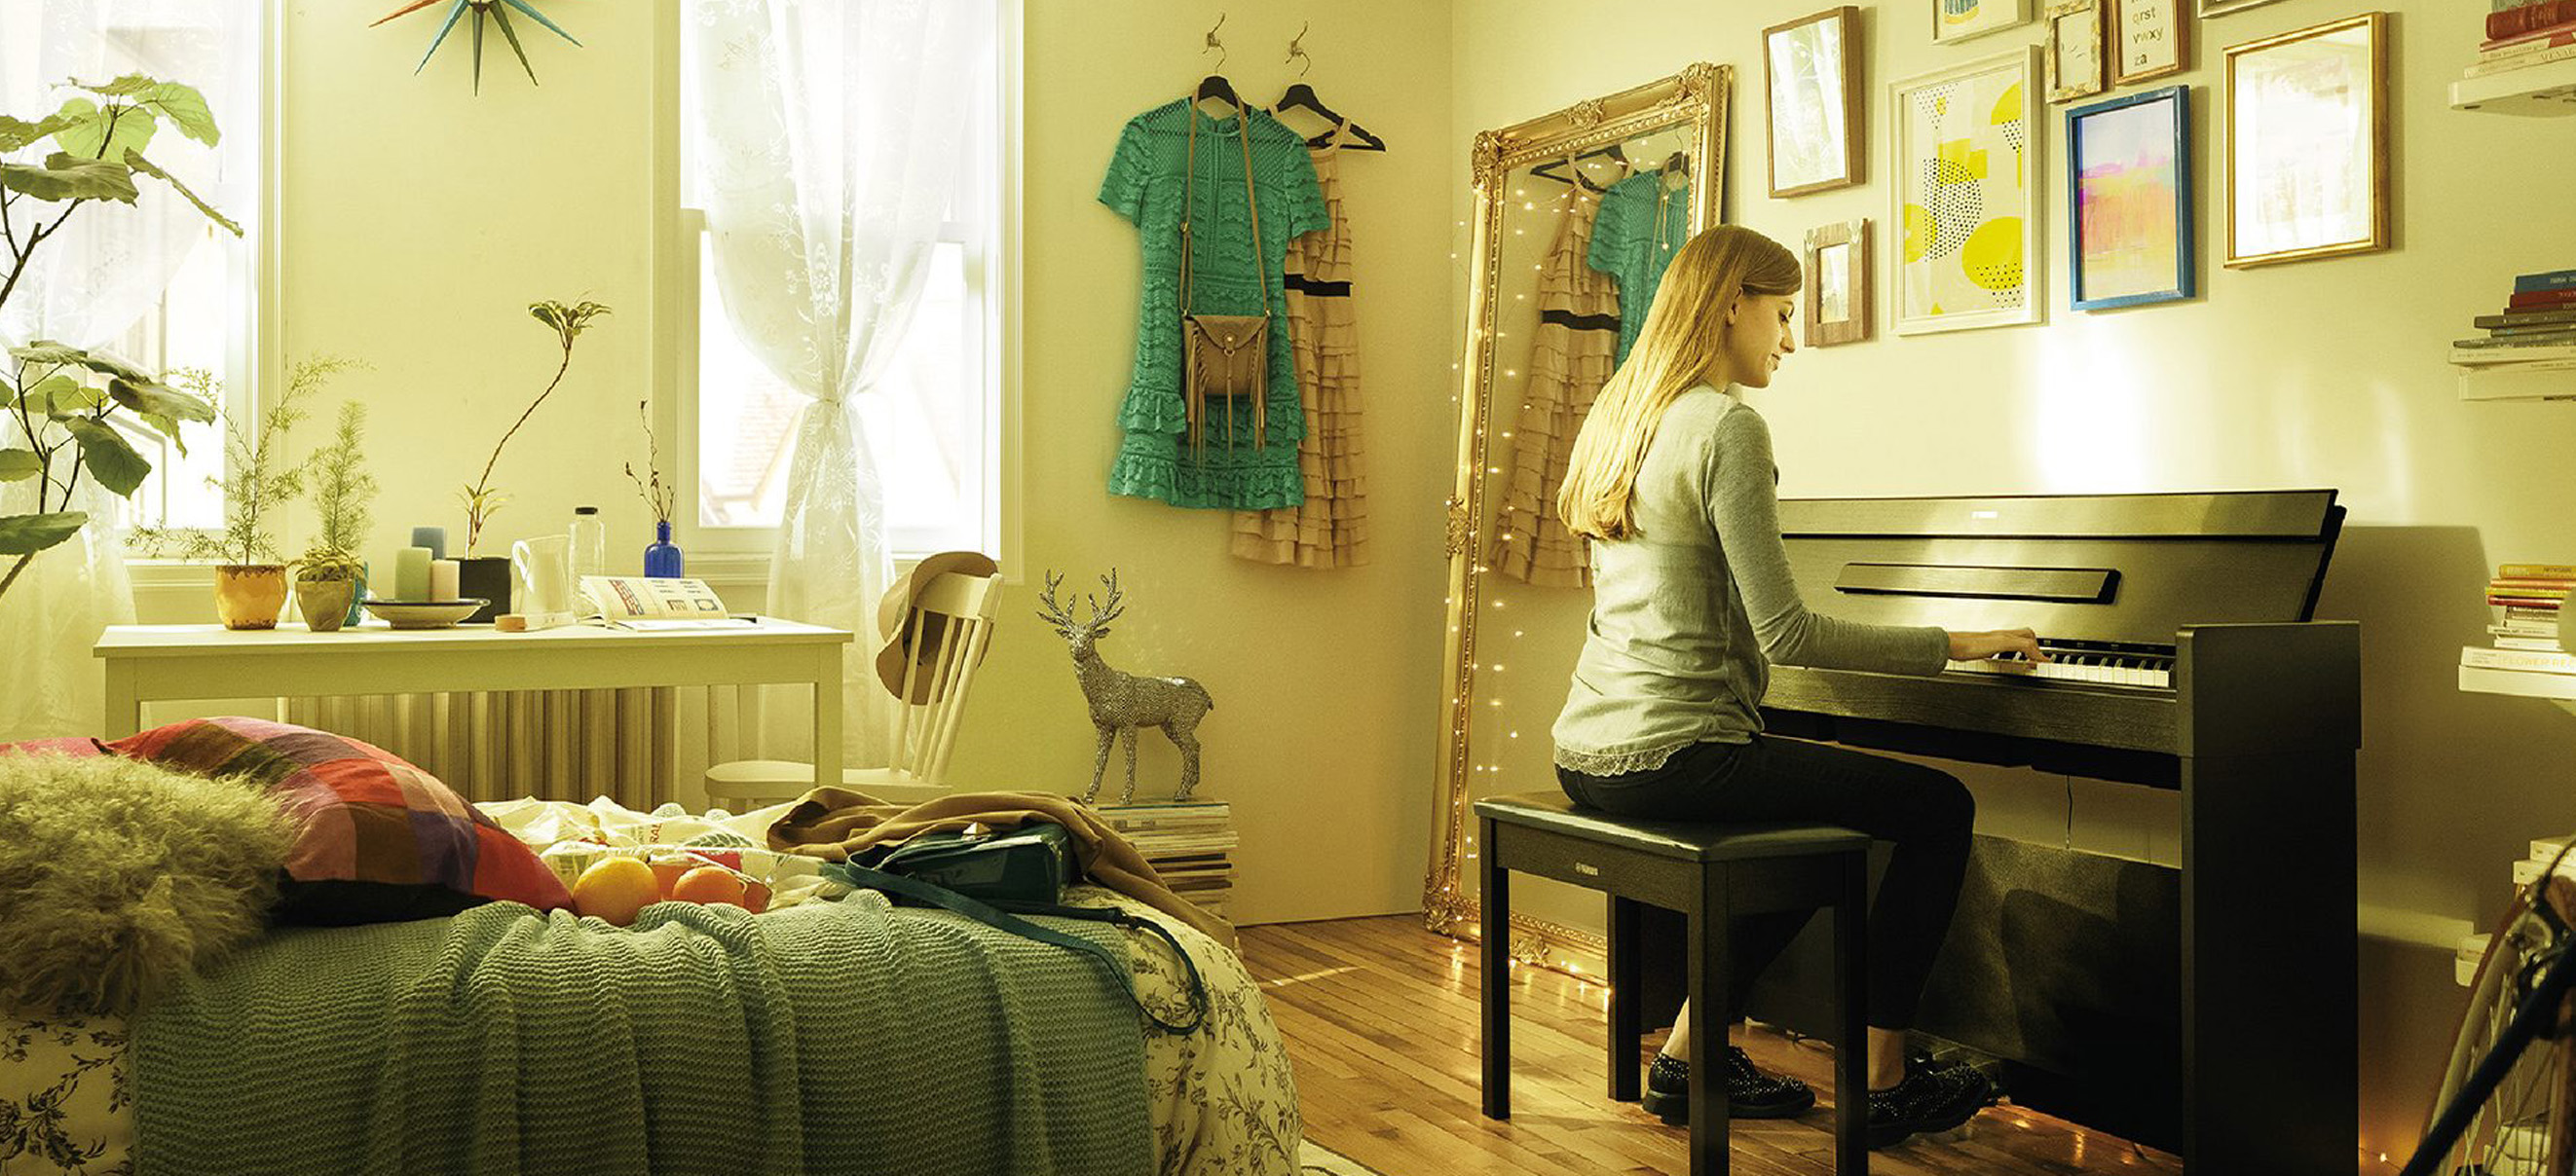 Photo of a young woman playing the YDP-S34 in their studio bedroom